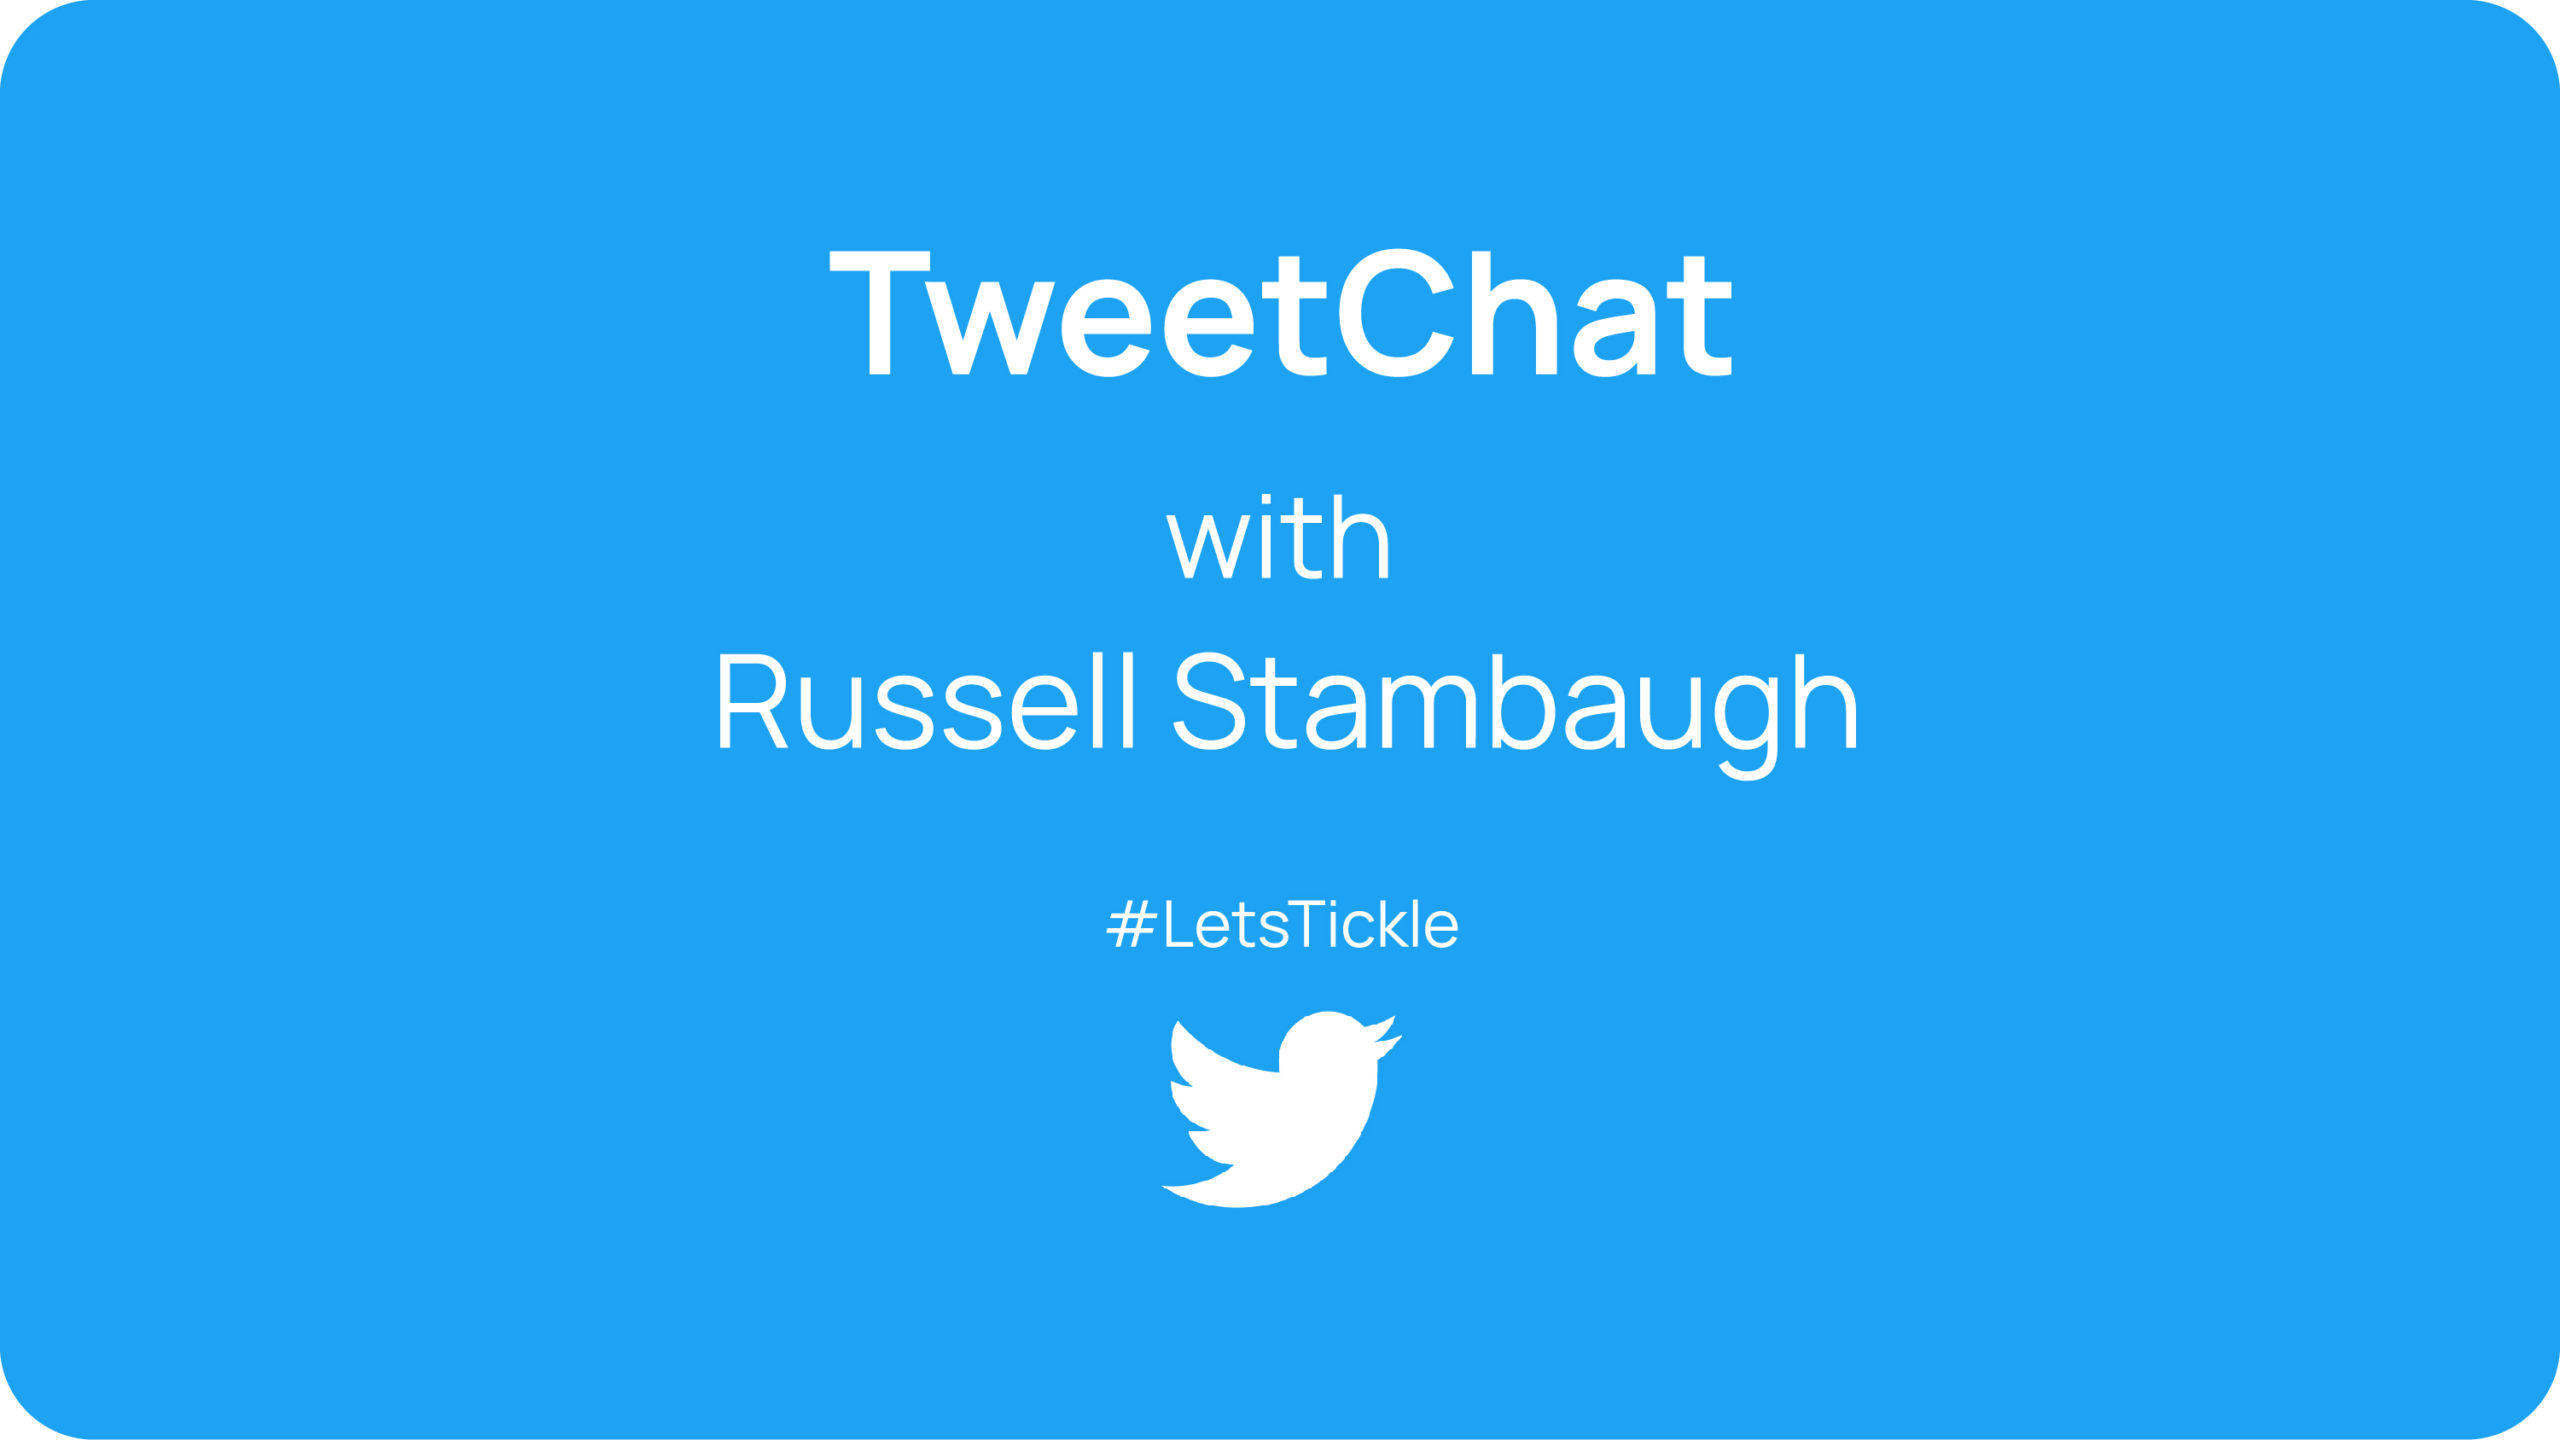 TweetChat with Russell Stambaugh